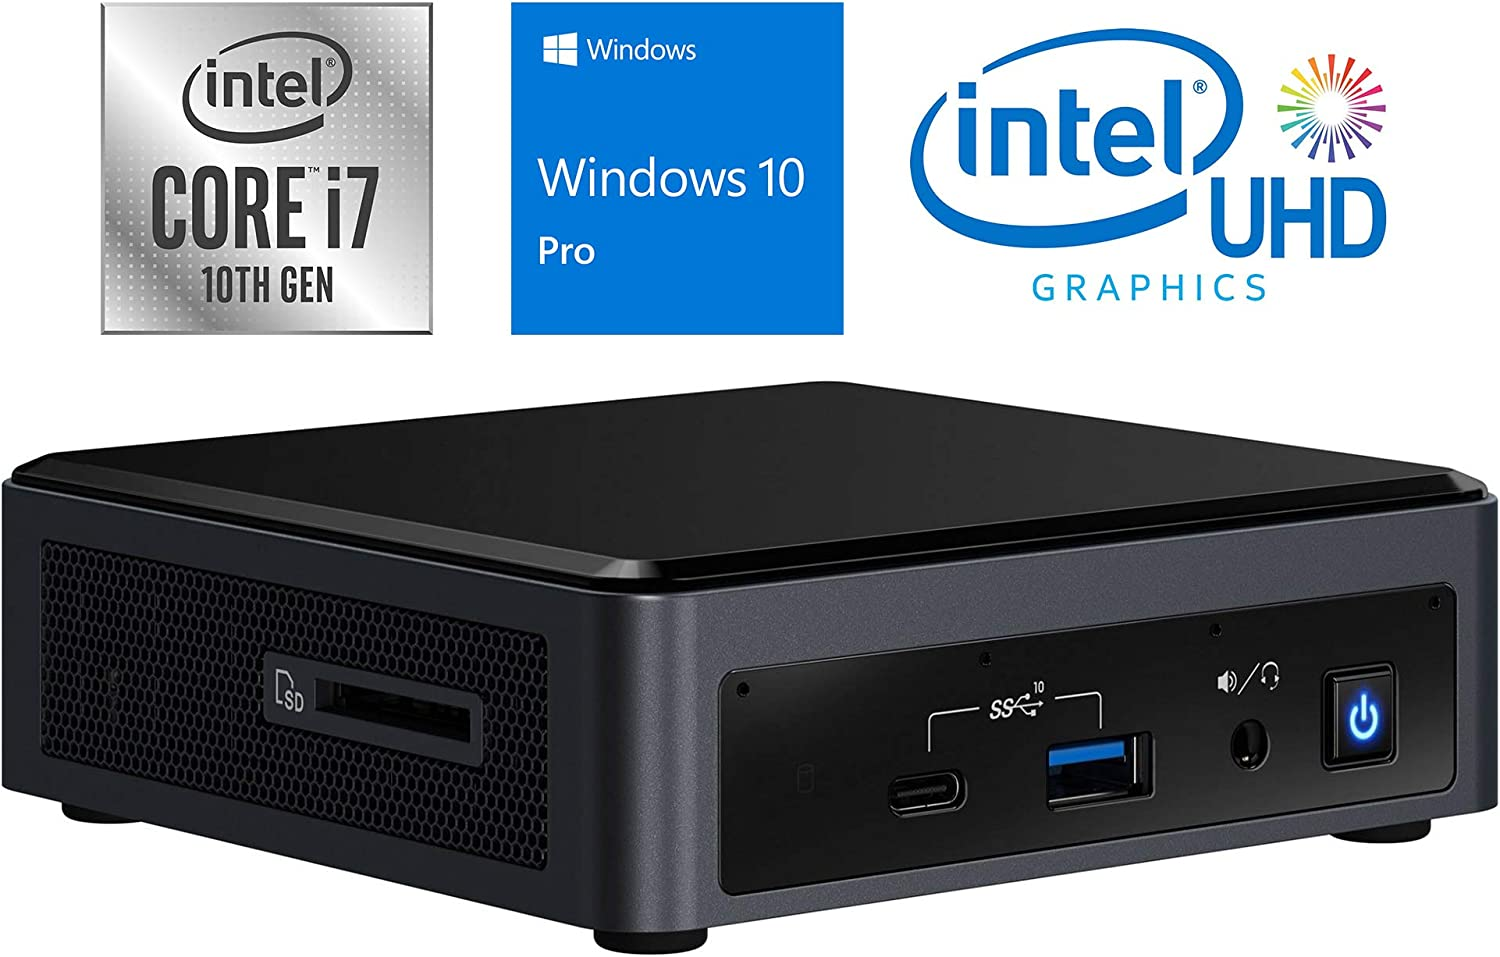 Intel NUC10i7FNK Mini PC, Intel Core i7-10710U Upto 4.7GHz, 64GB RAM, 1TB NVMe SSD, HDMI, Thunderbolt, Card Reader, Wi-Fi, Bluetooth, Windows 10 Pro